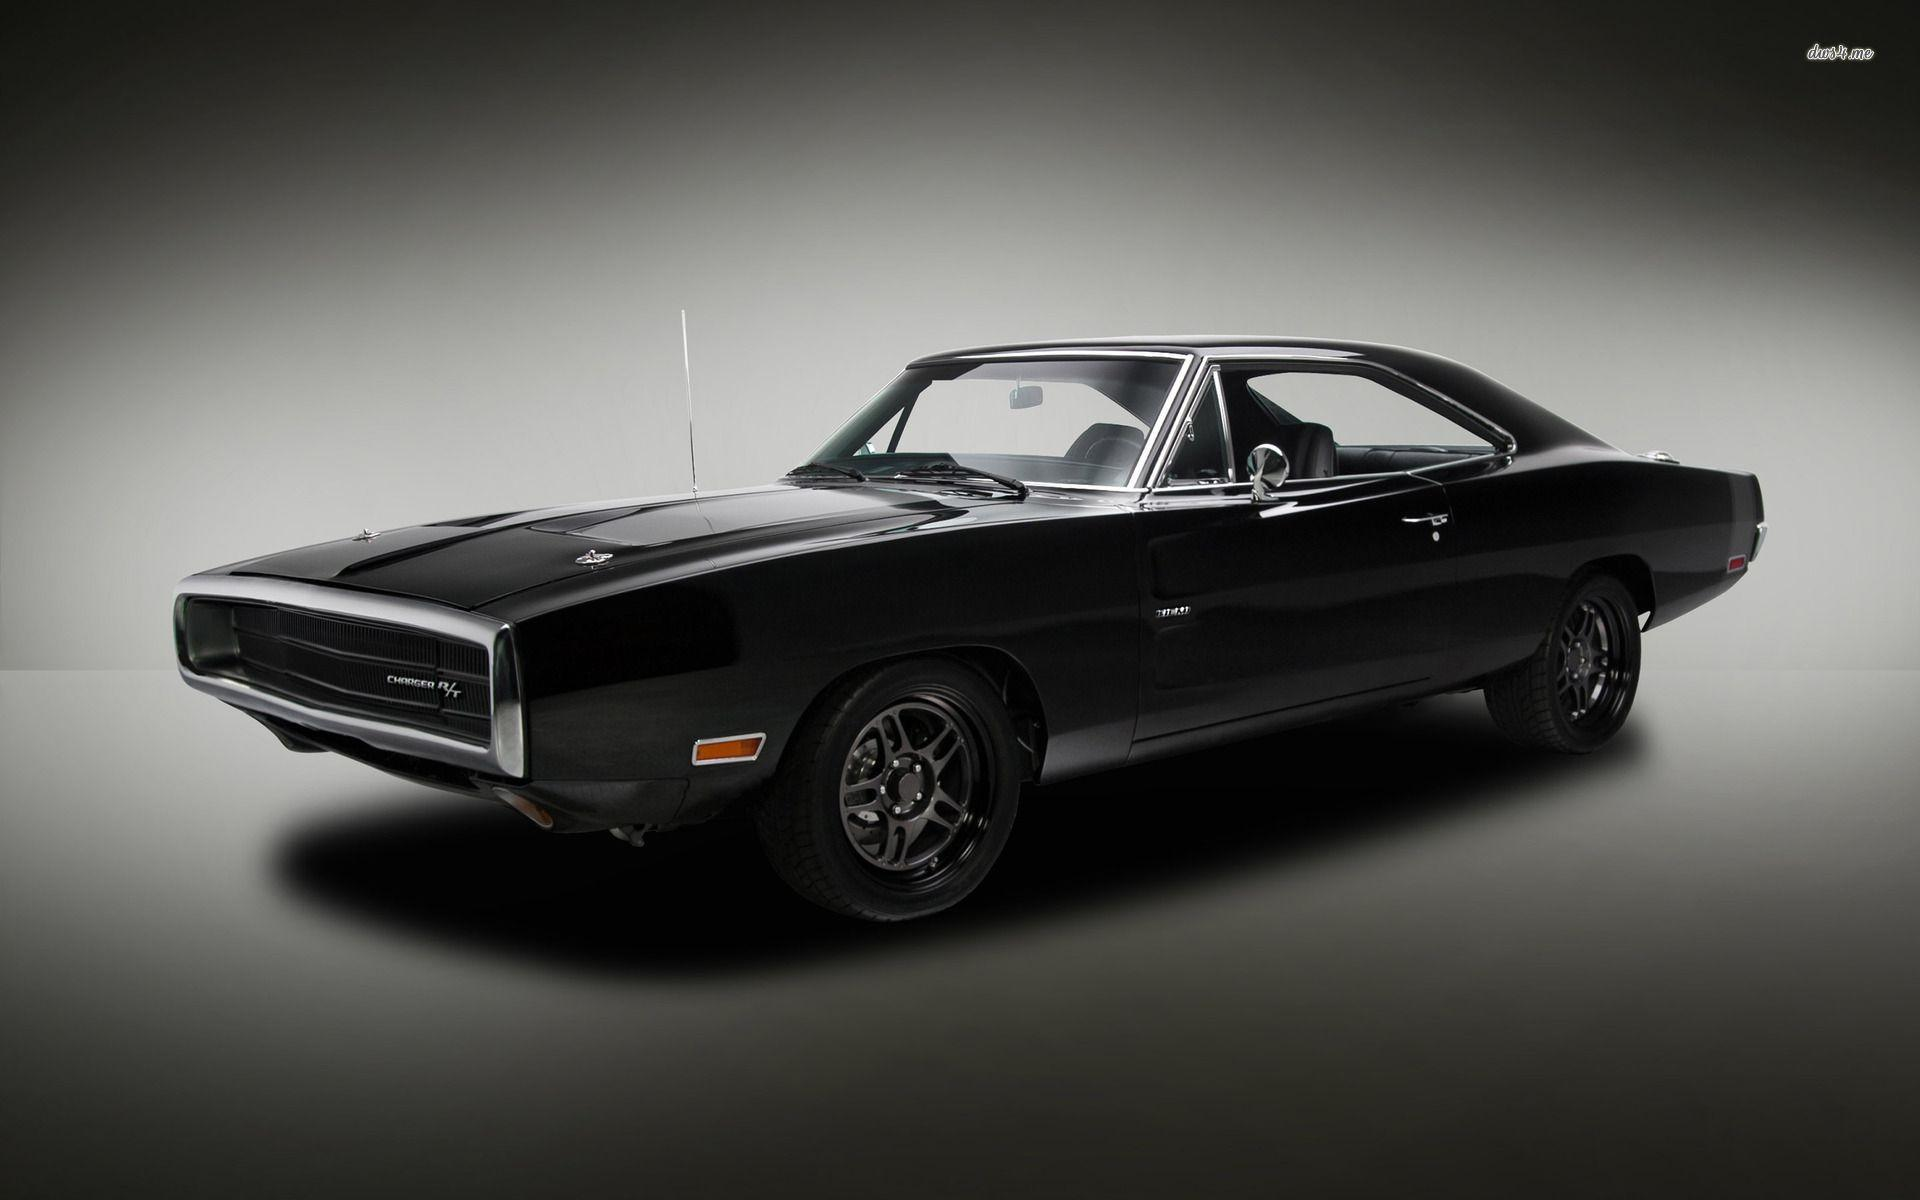 69 Dodge Charger Wallp...